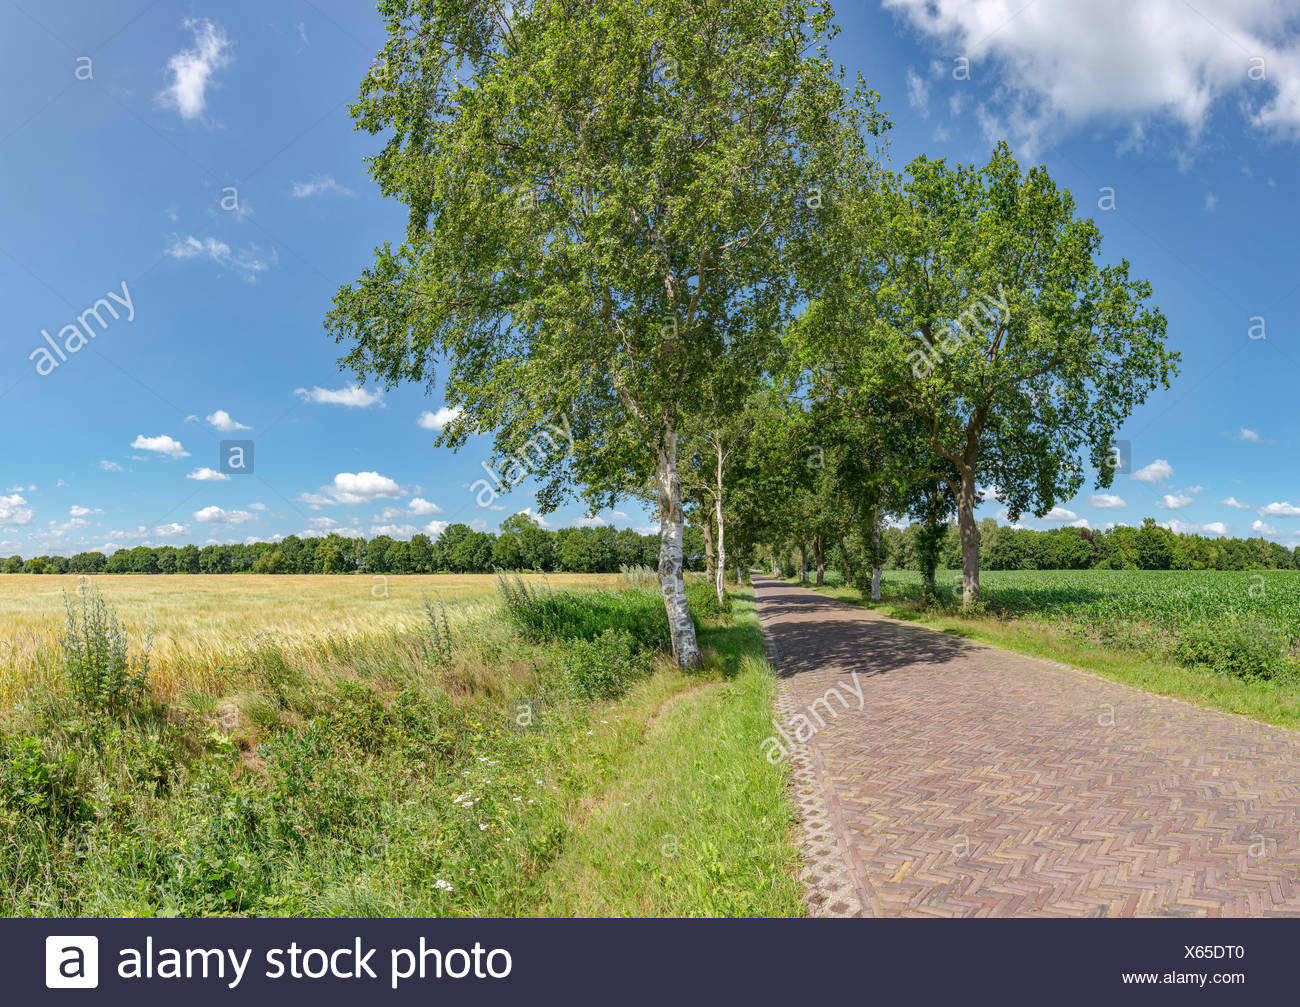 Langelo,Drenthe,Brick paved road with trees on both sides along a cornfield - Stock Image